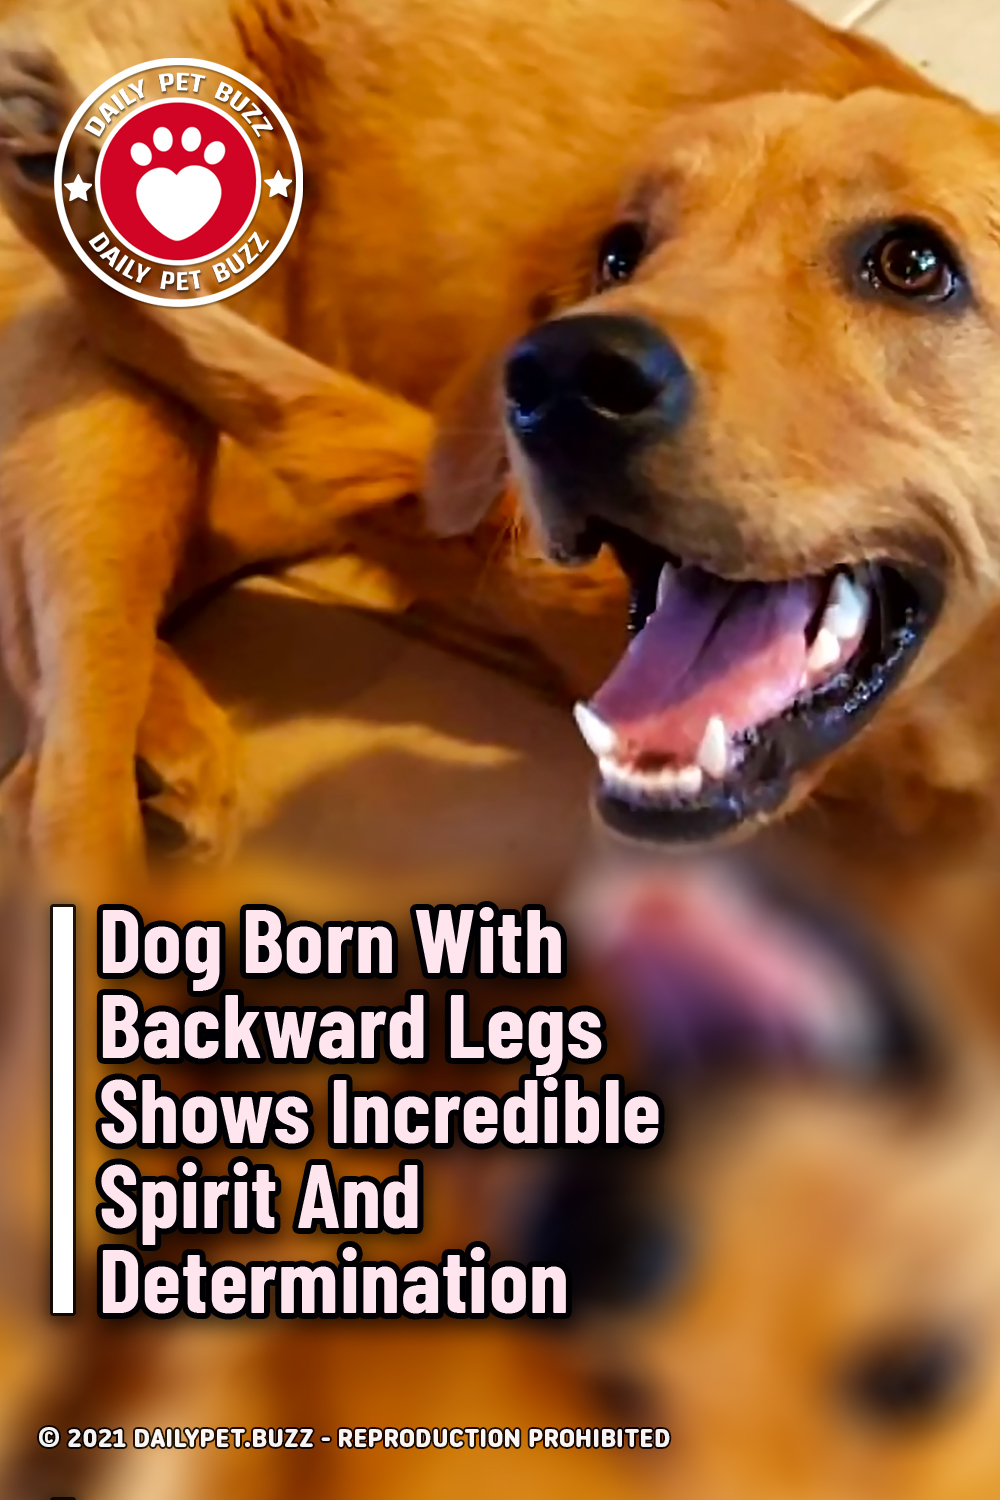 Dog Born With Backward Legs Shows Incredible Spirit And Determination